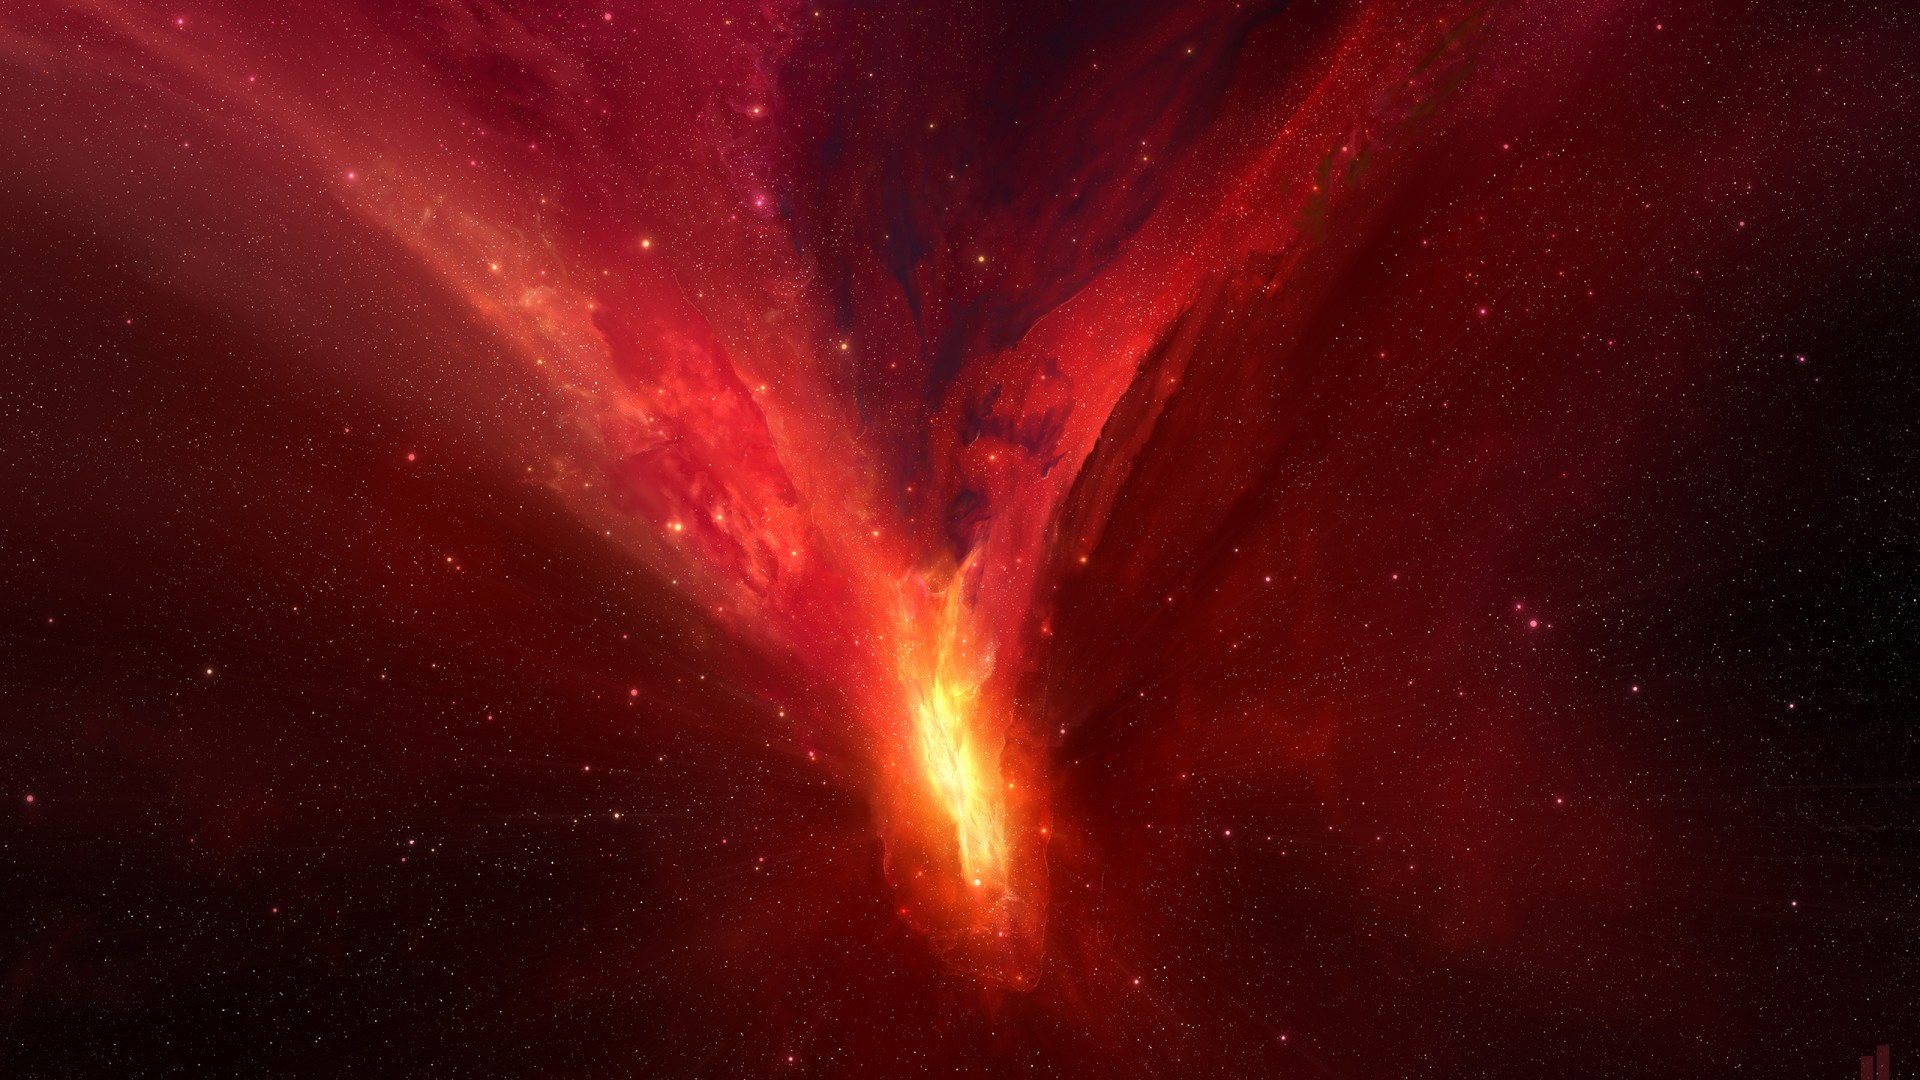 Wallpaper Horsehead Nebula Red Hd Space 16828 Page 3